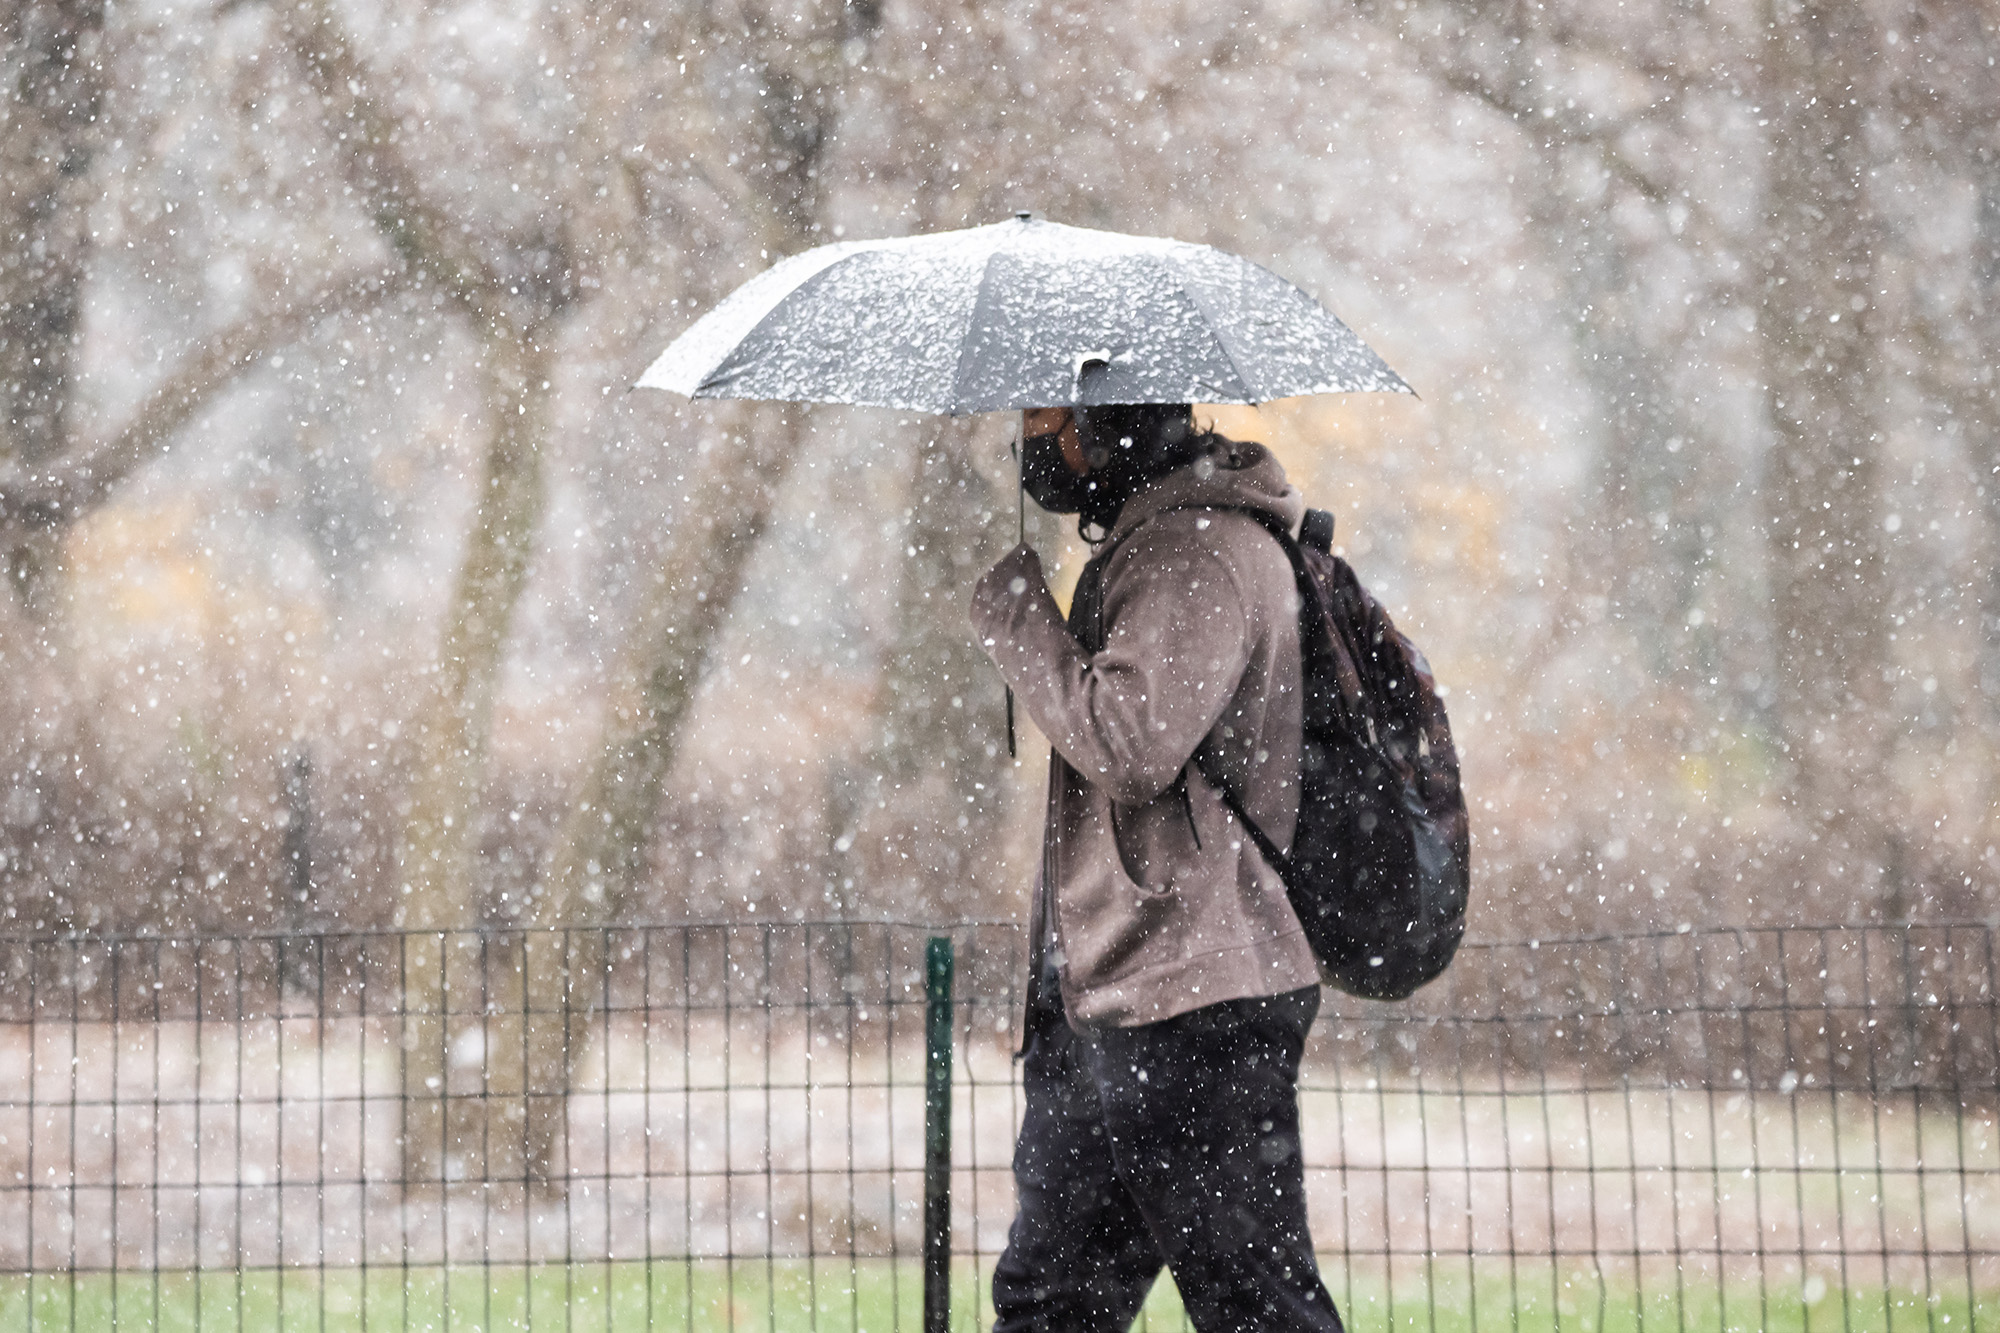 Massive snowstorm set to bring a foot of snow, 'ugly mess' to NYC